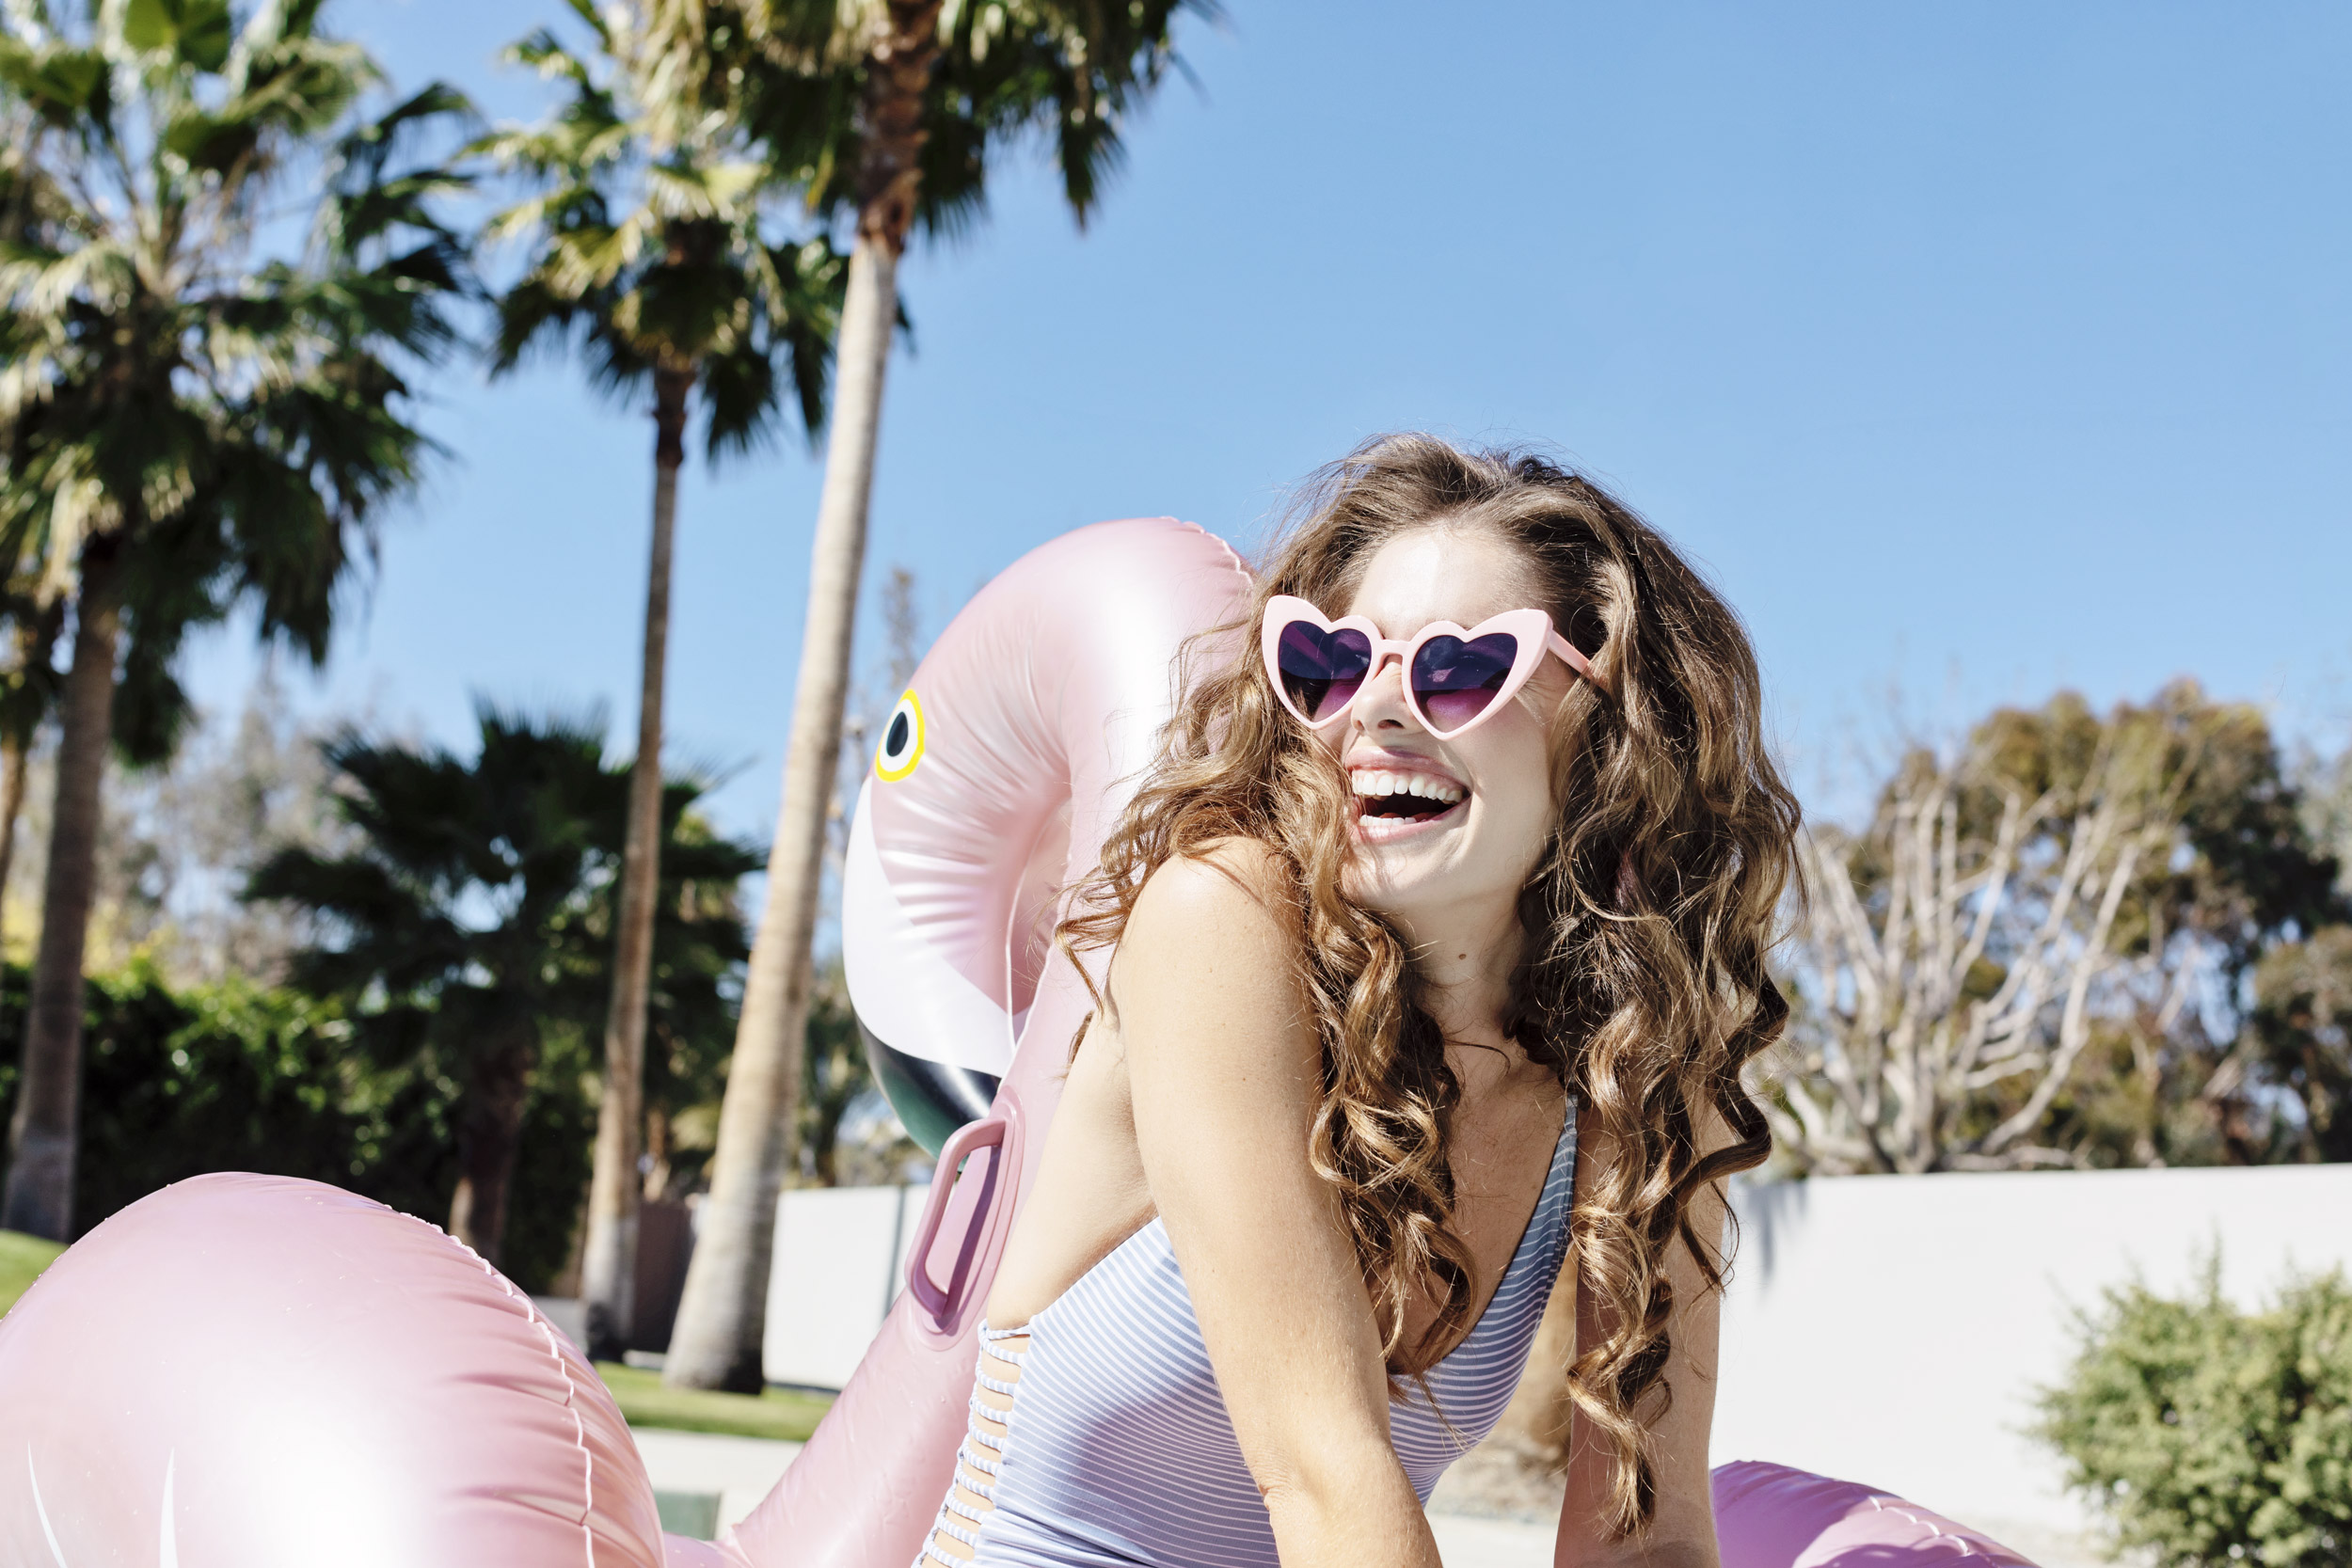 Girl wearing heart sunglasses on a flamingo pool float